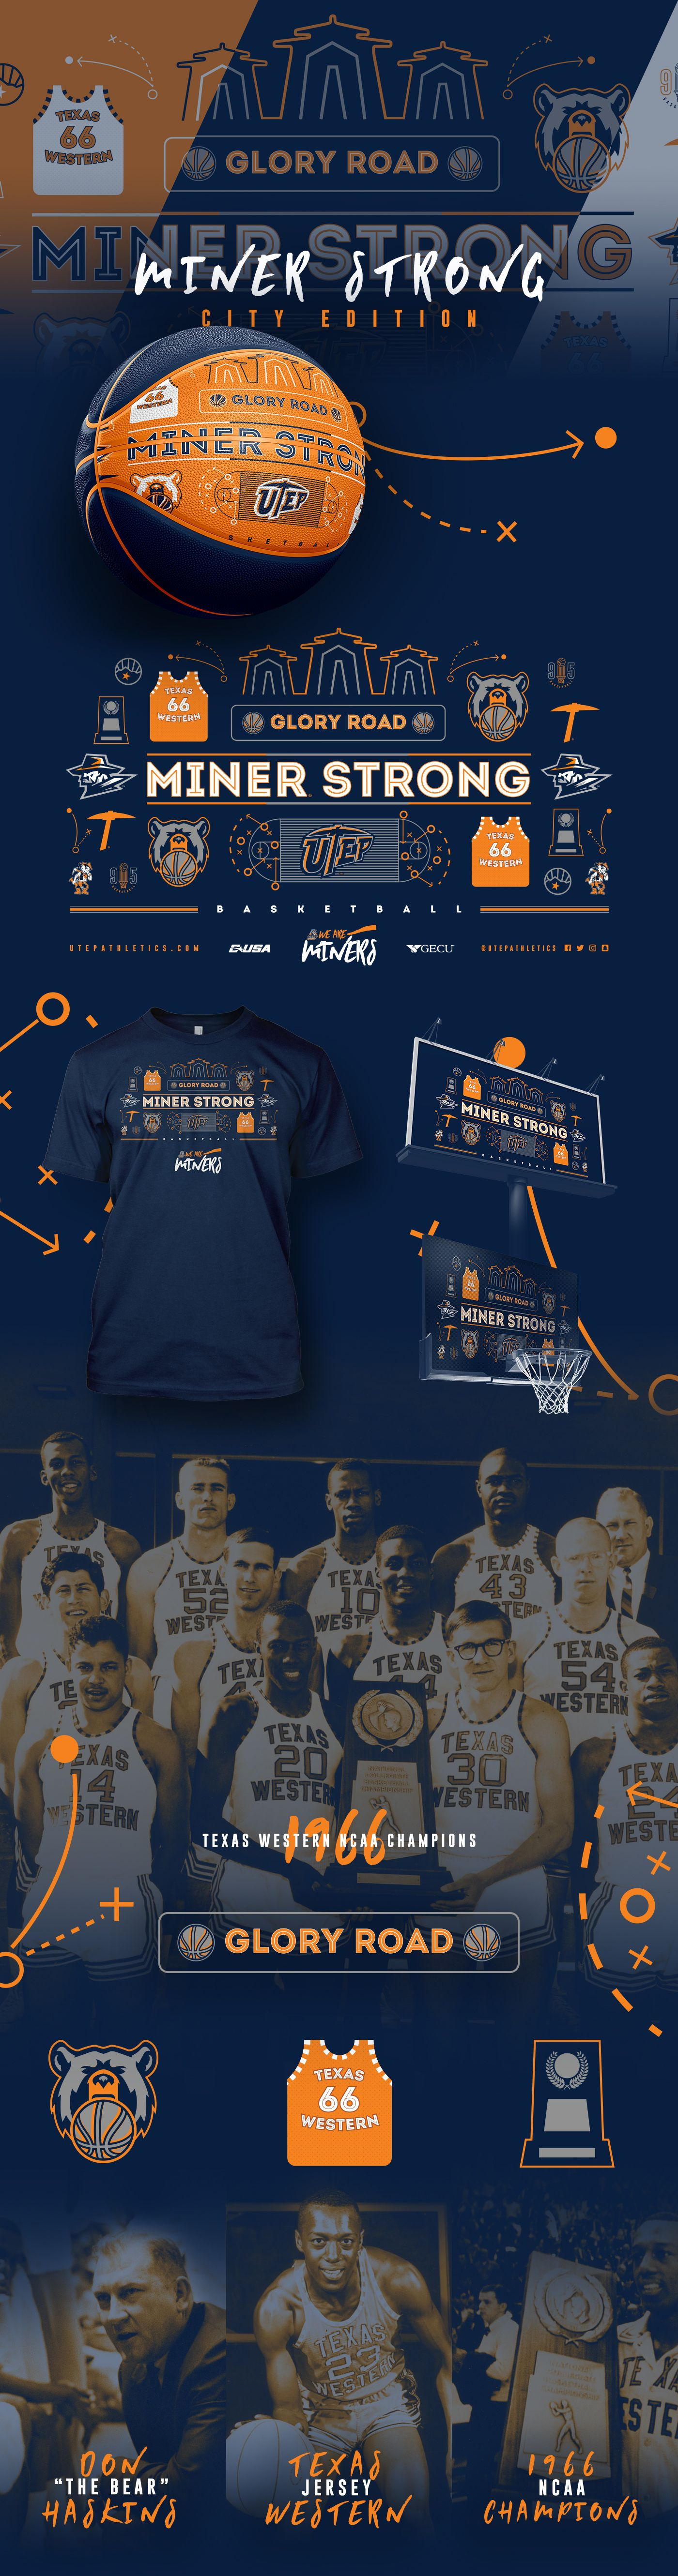 Branding Concept For Utep Basketball Miner Strong Campaign Logo Design Inspiration Sports Graphic Design Logo Logo Design Inspiration